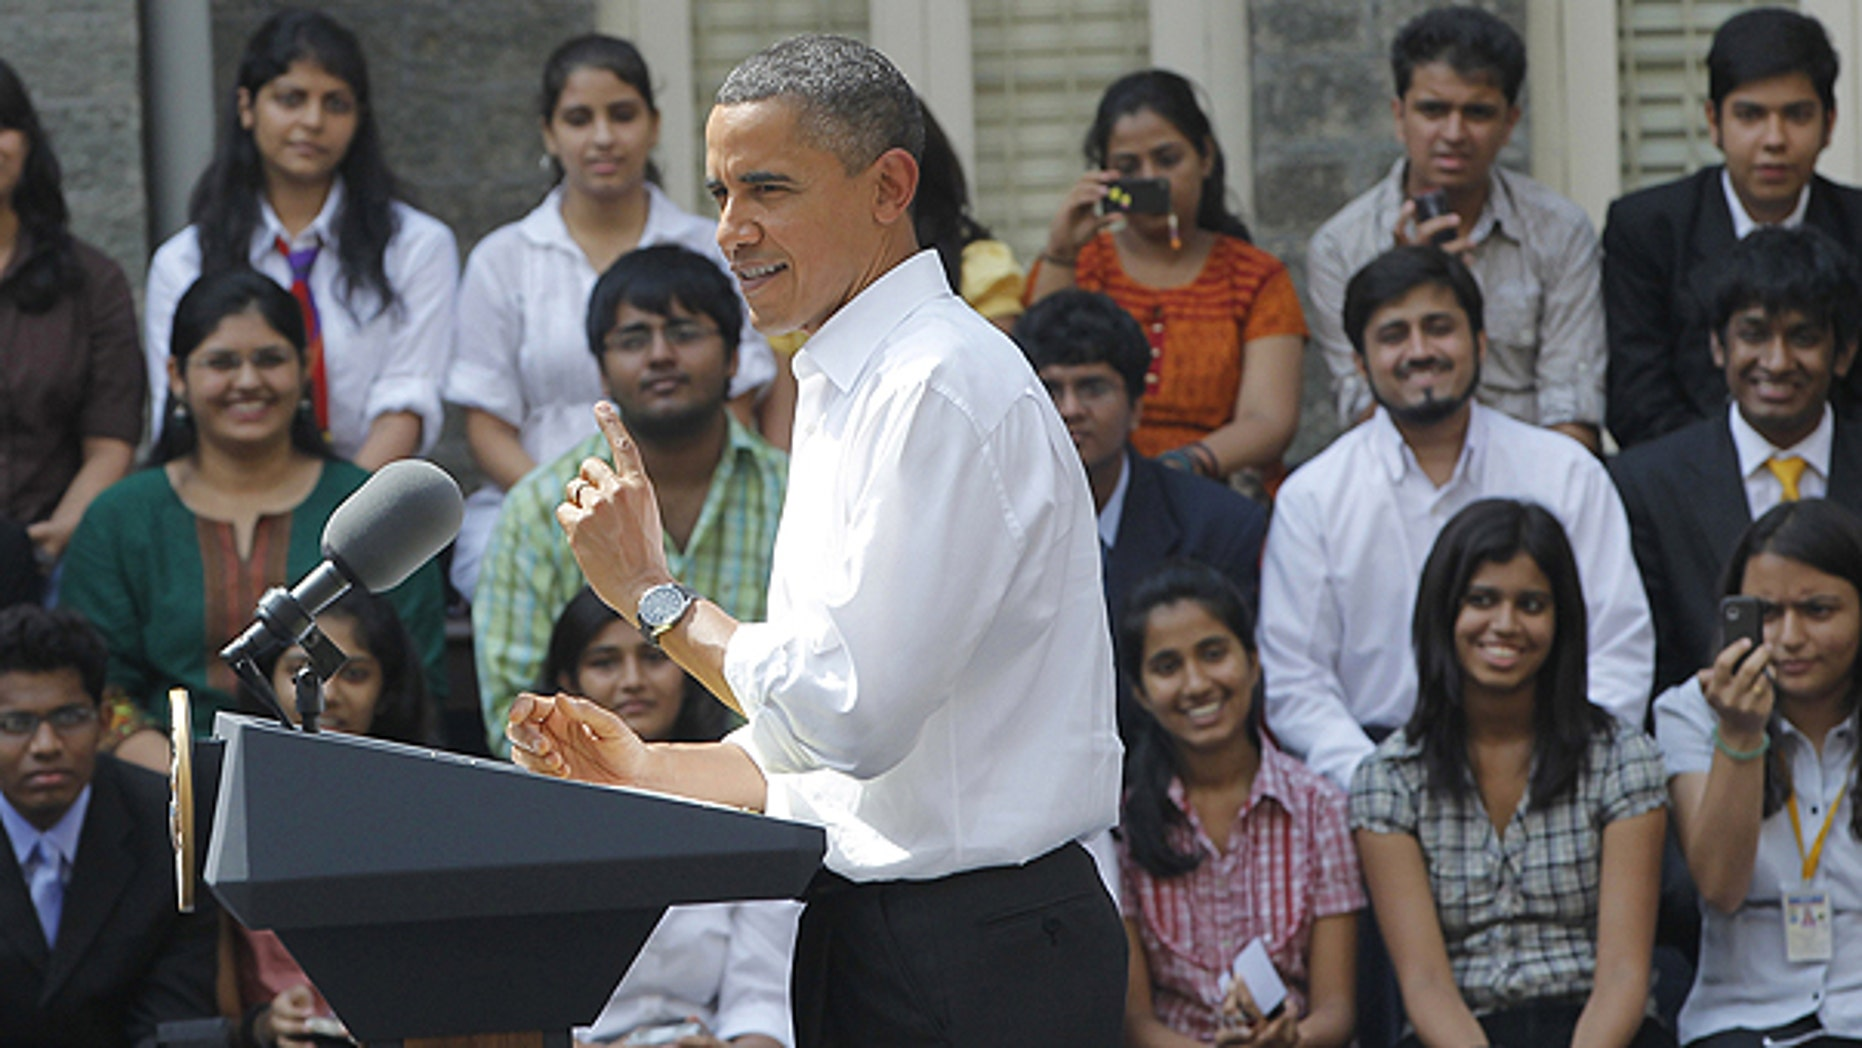 Nov. 7: President Obama speaks at a town-hall style event with students at St. Xavier's College in Mumbai, India.